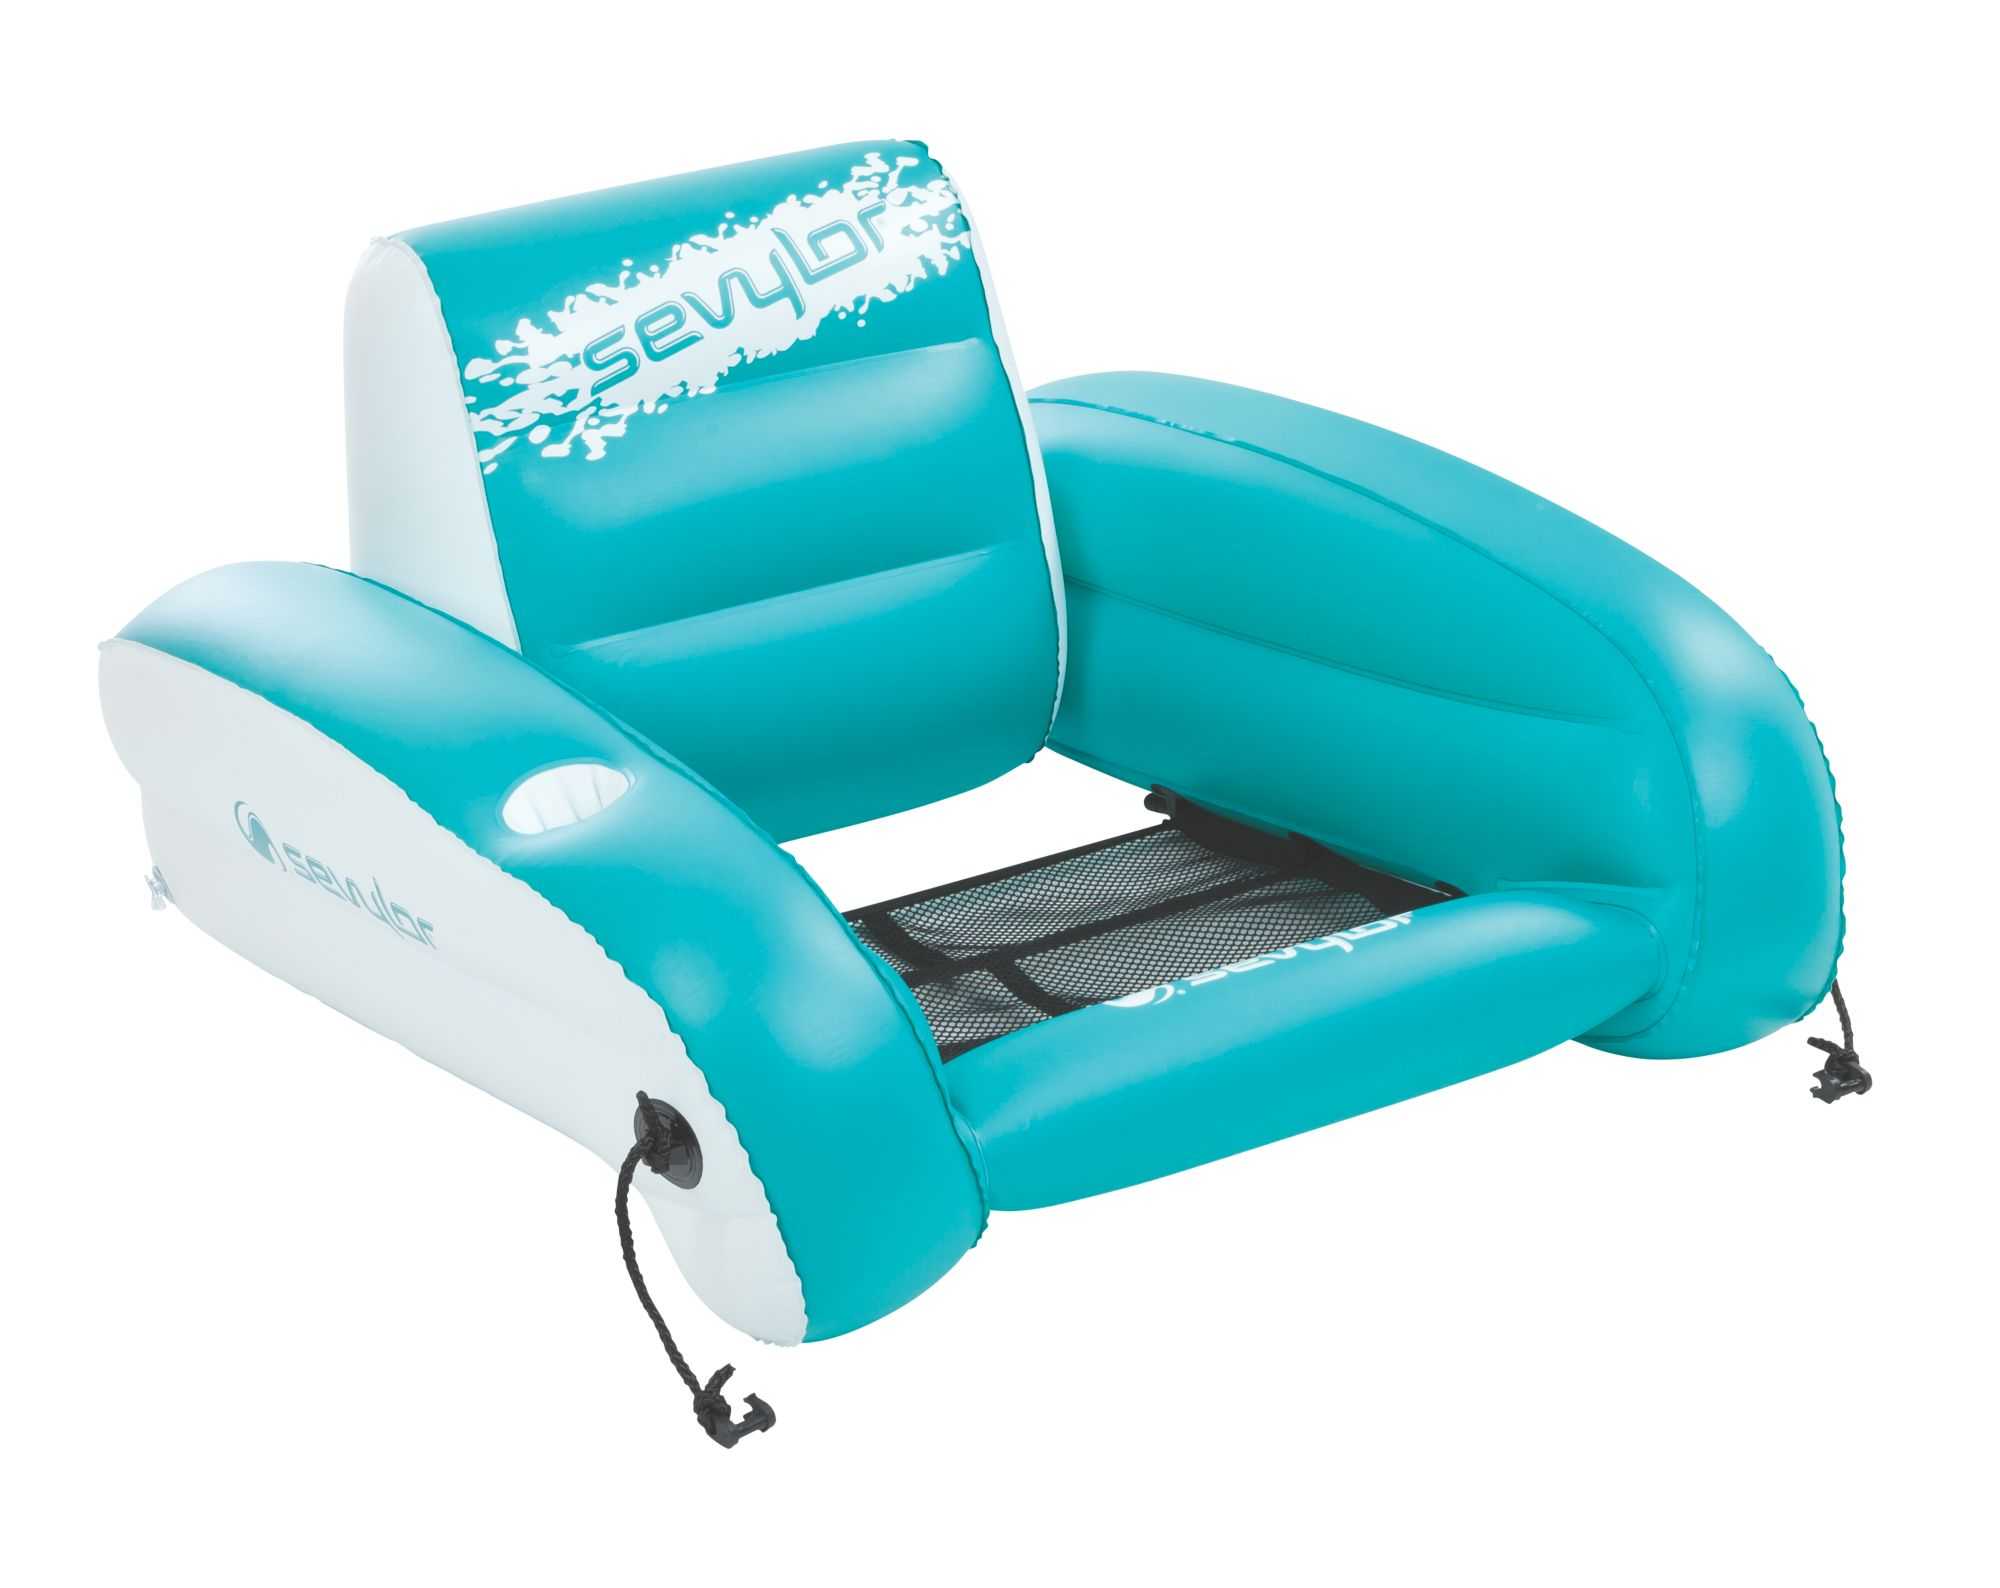 Water Lounge Chair Lake Floats